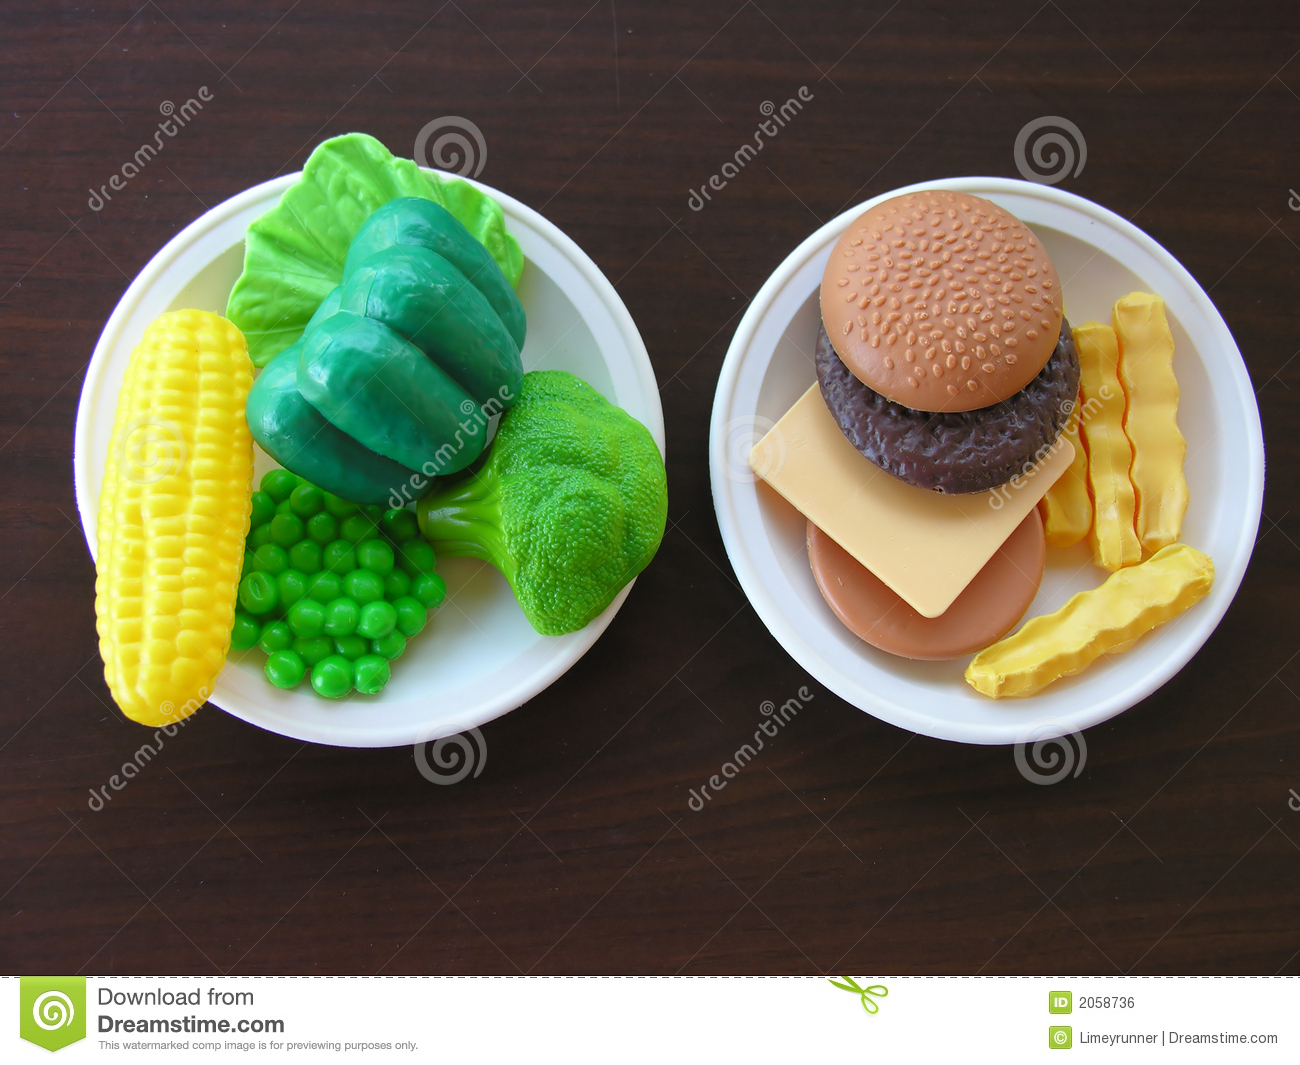 Making Healthy Food Choices Royalty Free Stock Image